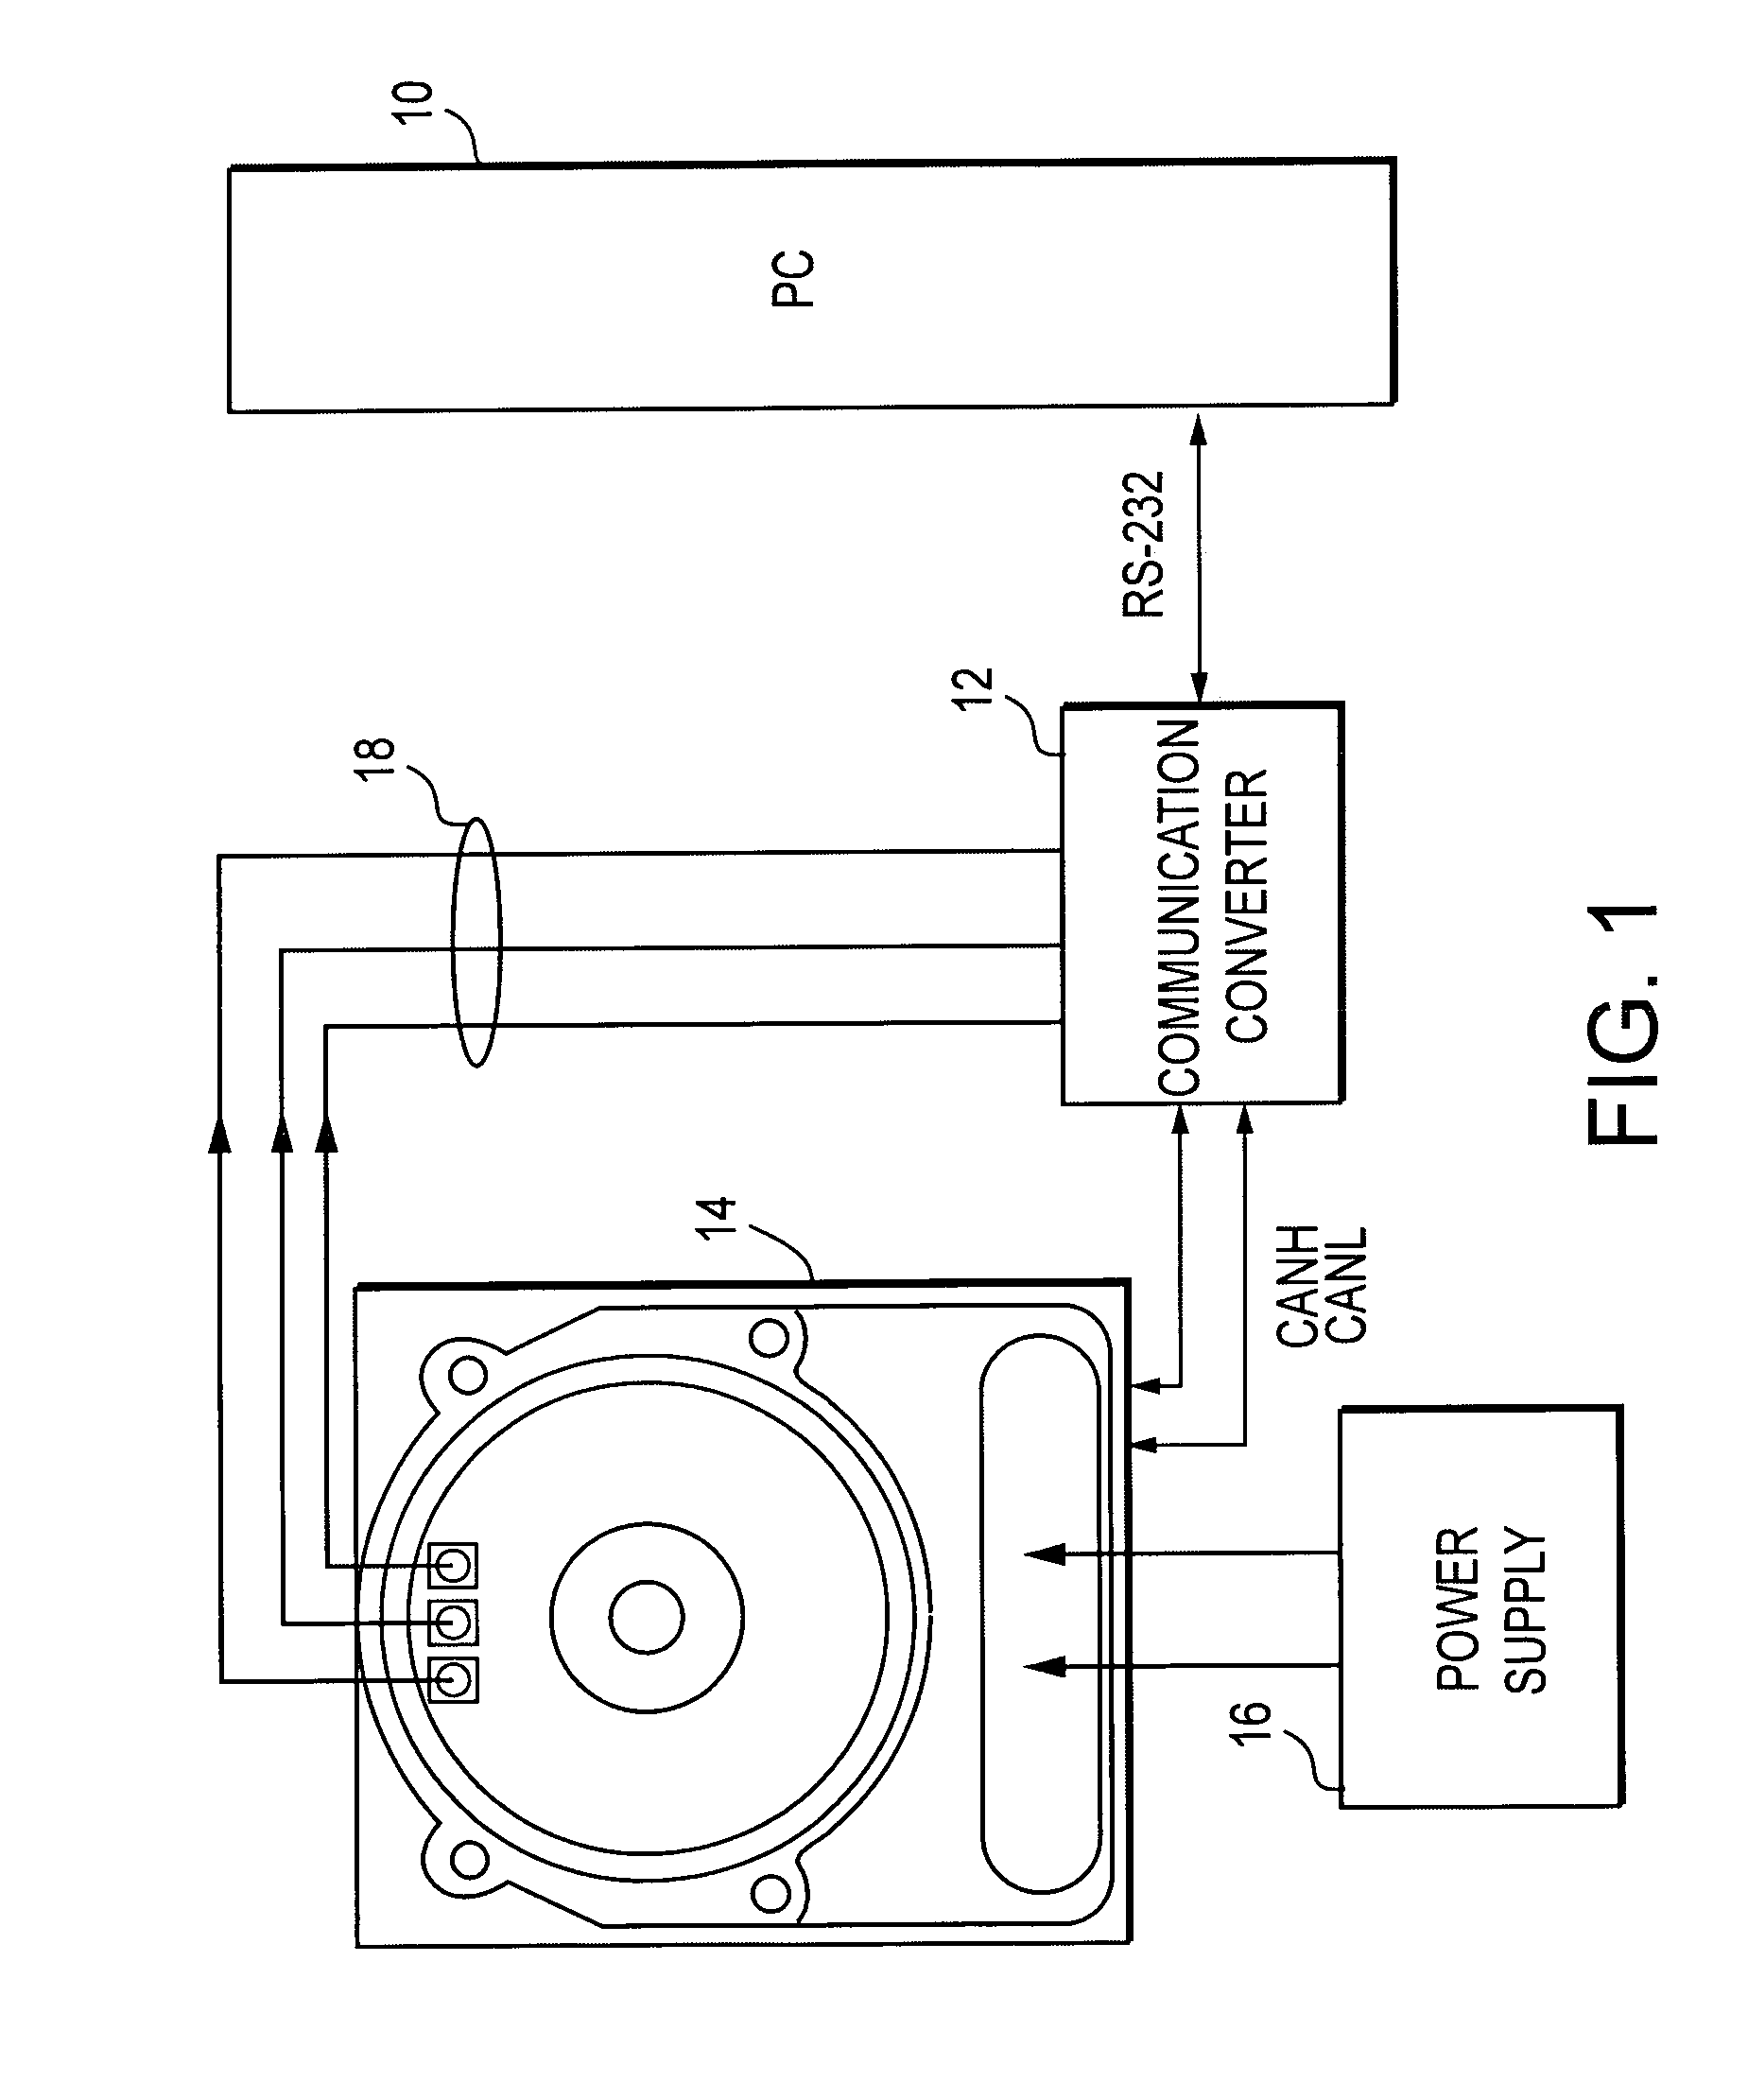 patent us7423396 - hall sensor alignment for bldc motor